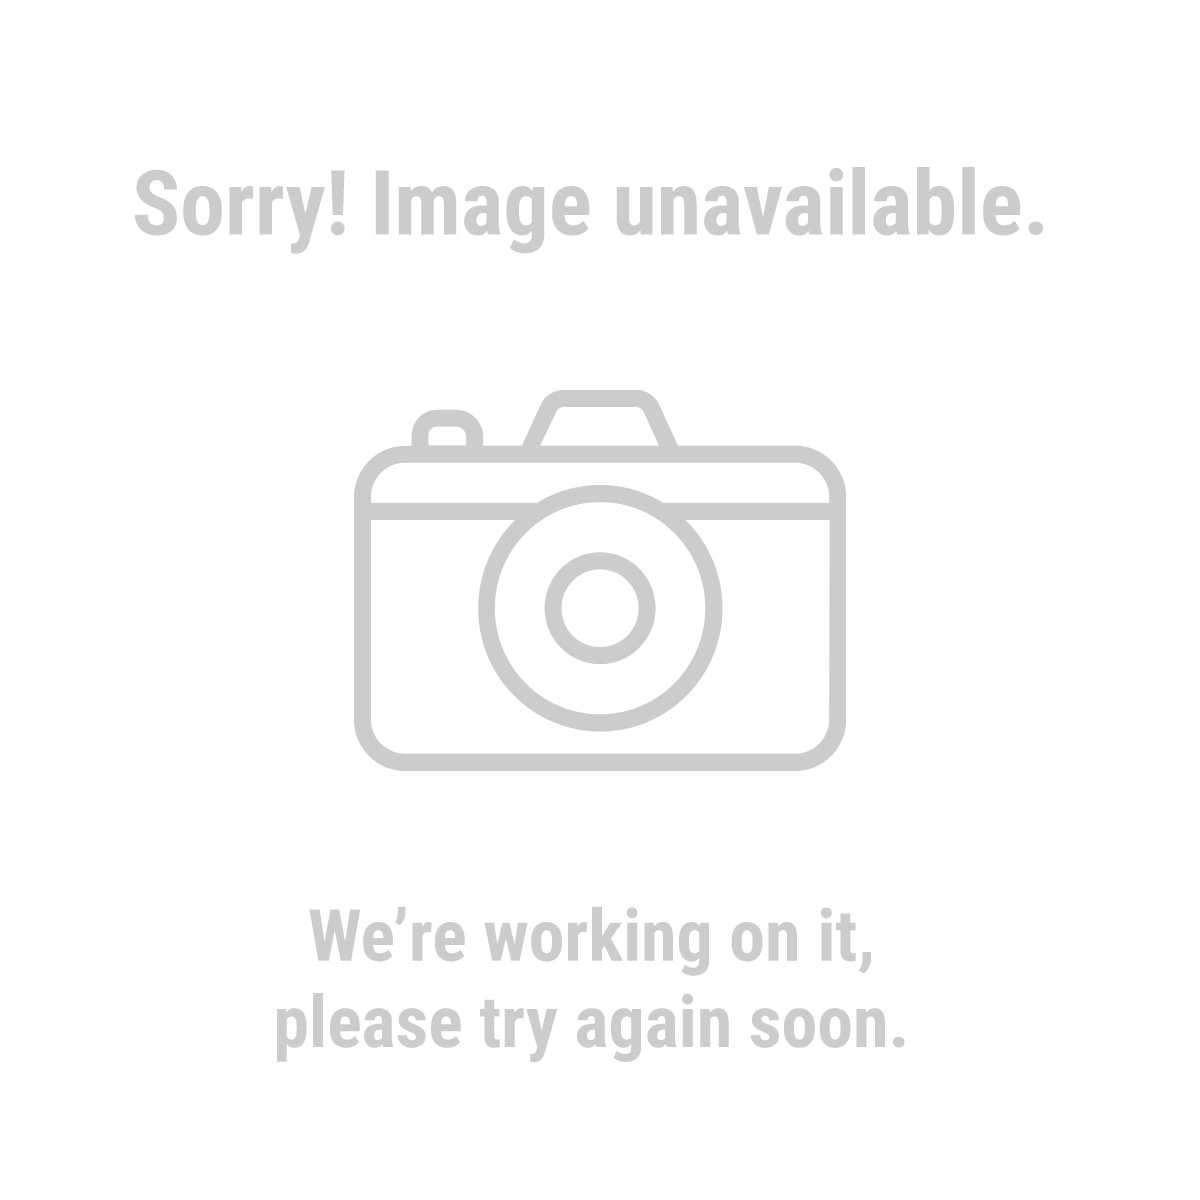 Central Machinery® 61483 13 in. Floor Mount Drill Press, 16 Speed